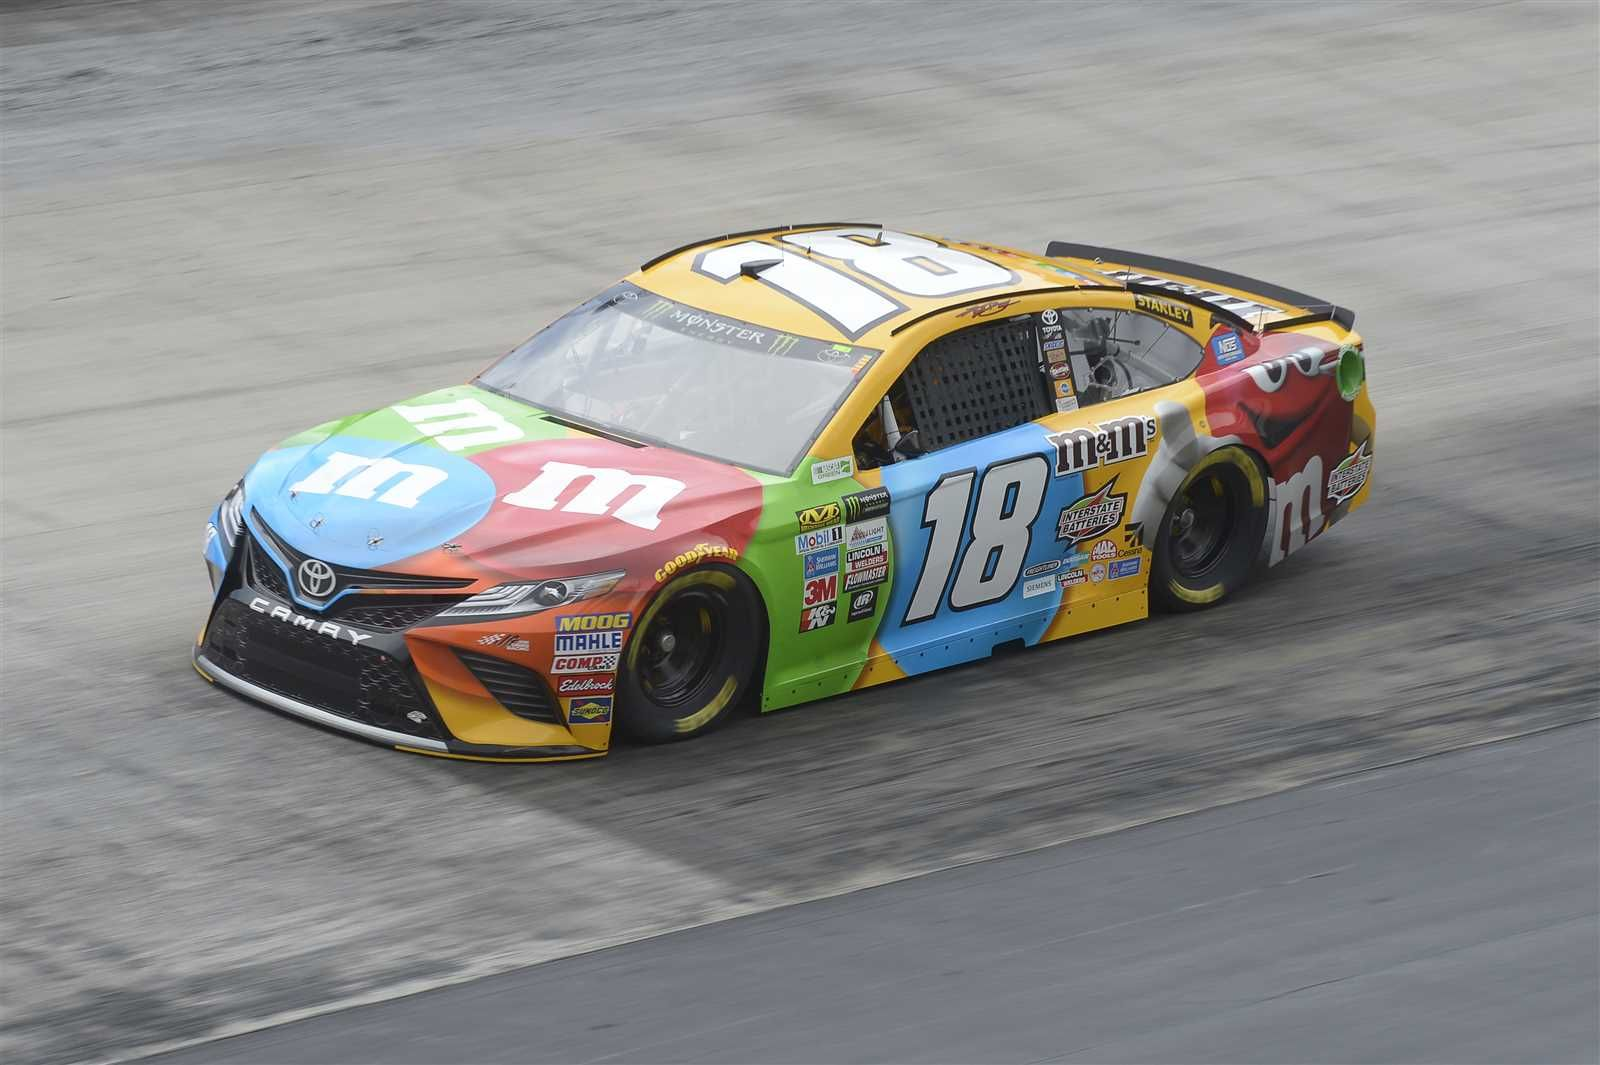 Food City 500 (Bristol) April 23, 2017 Kyle Busch will start seventh in the No. 18 Joe Gibbs Racing Toyota Crew chief: Adam Stevens Spotter: Tony Hirschman